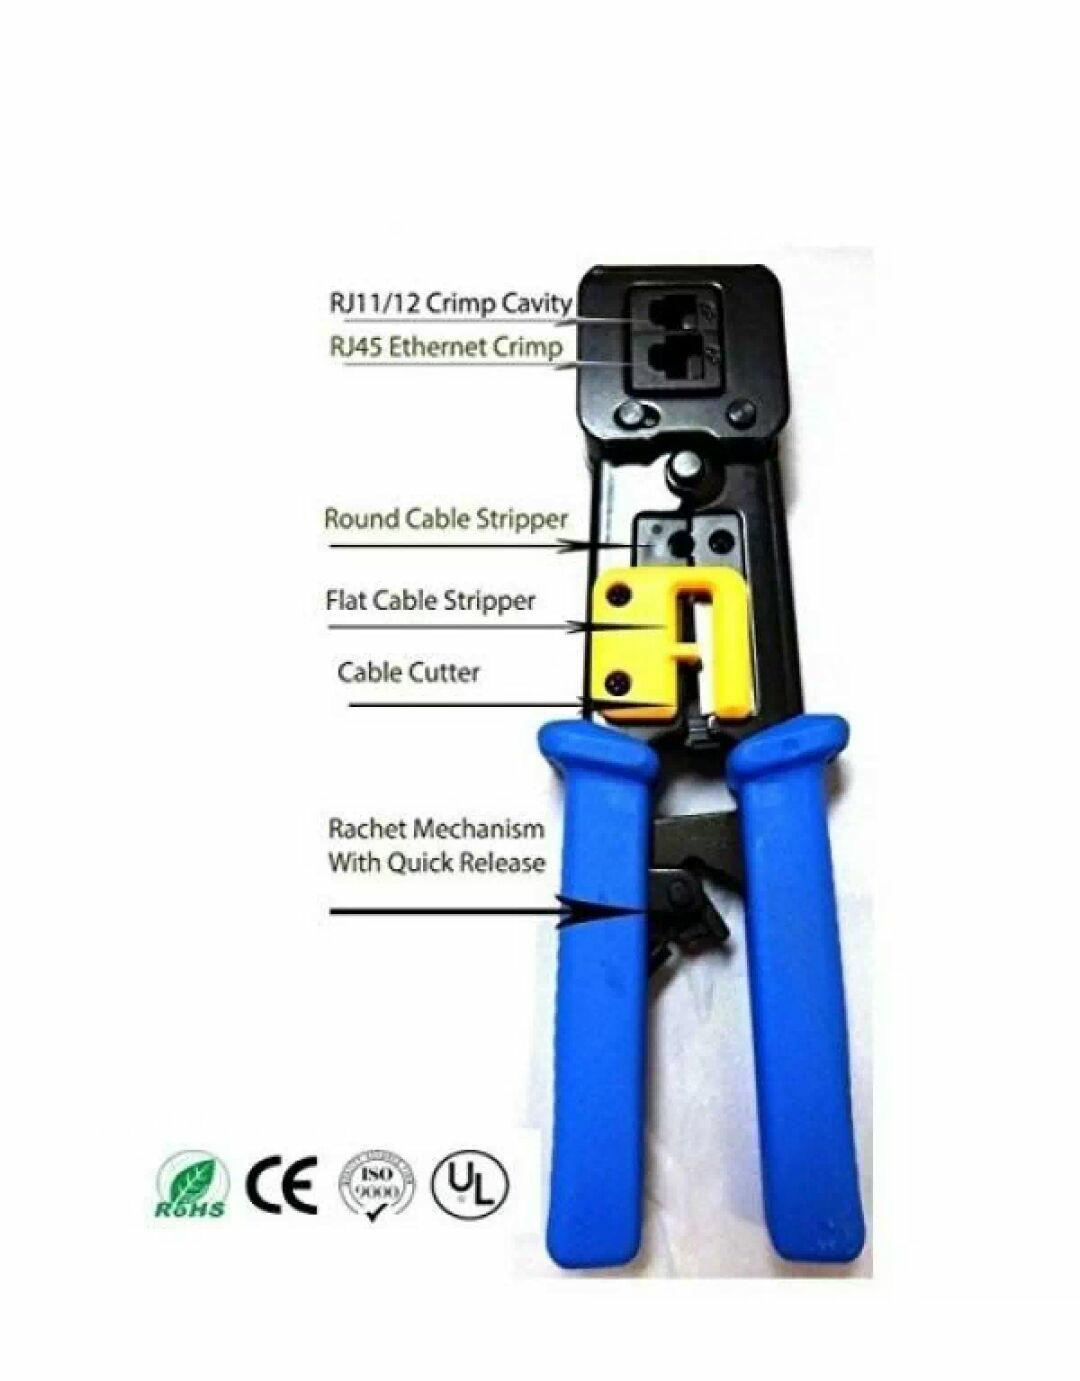 Cable Tester For Sale Pc Prices Brands Specs In Rj45 Socket Wiring Tool Ez Crimper Crimping Passthrough Tagusan Passthru Passtru Connector